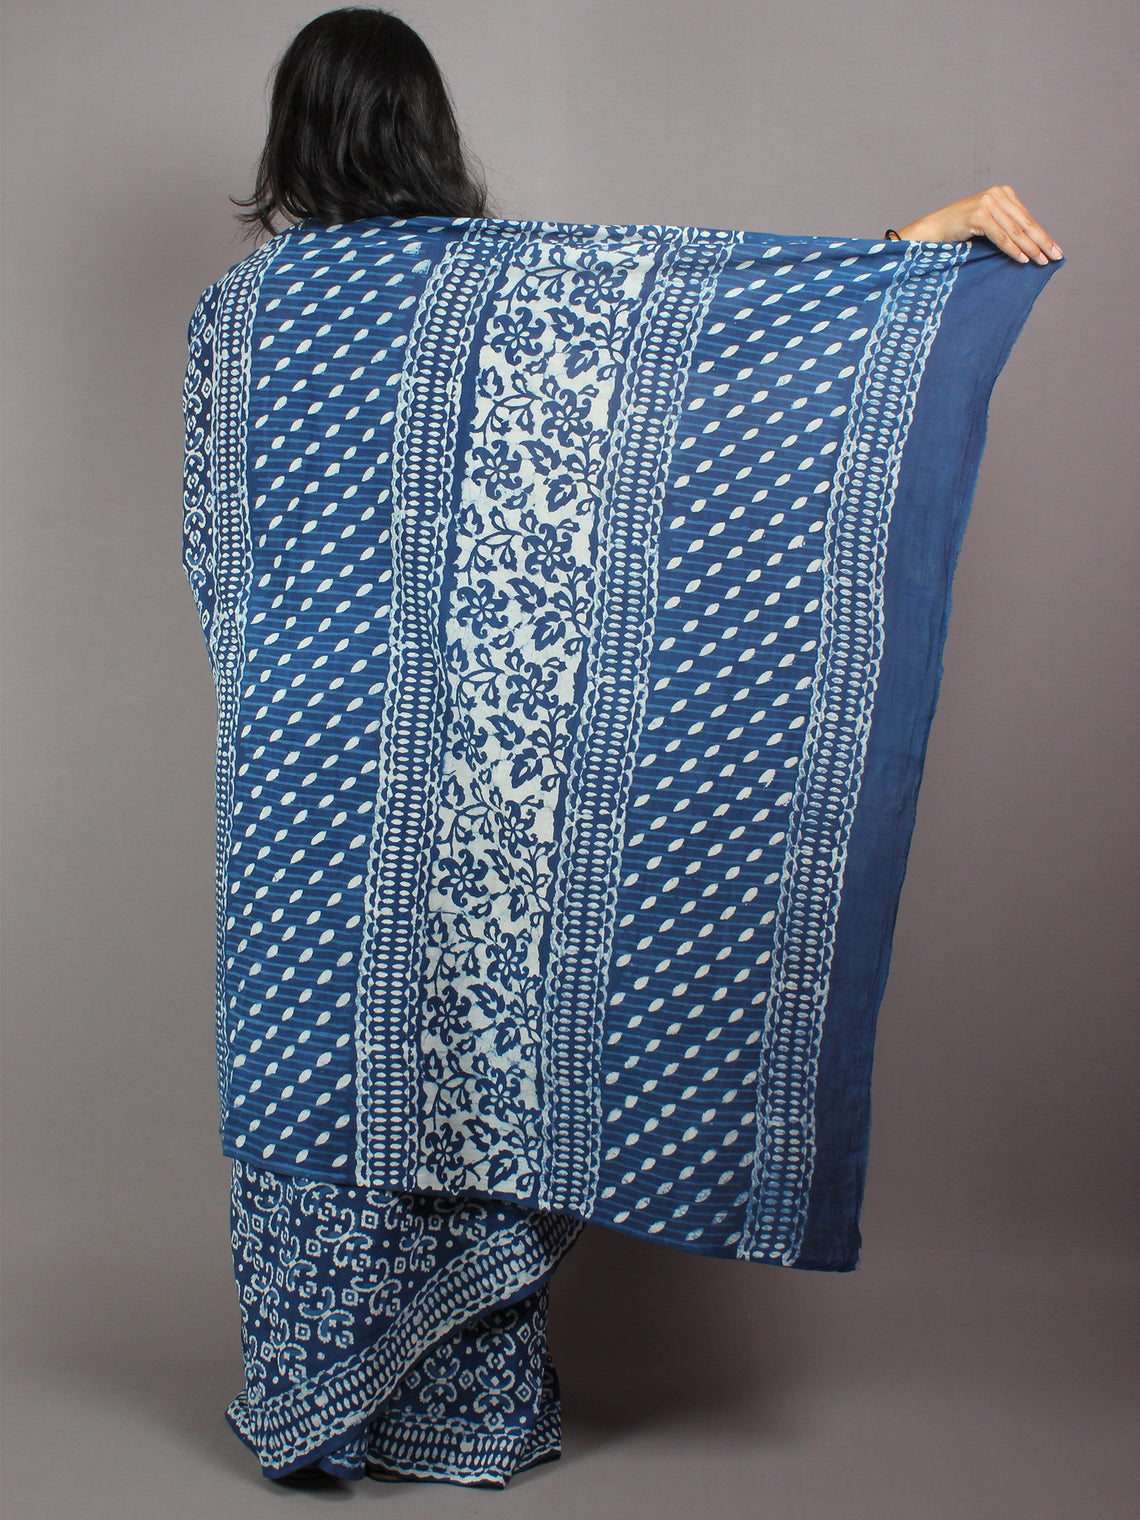 Indigo White Hand Block Printed in Natural Colors Cotton Mul Saree - S03170418